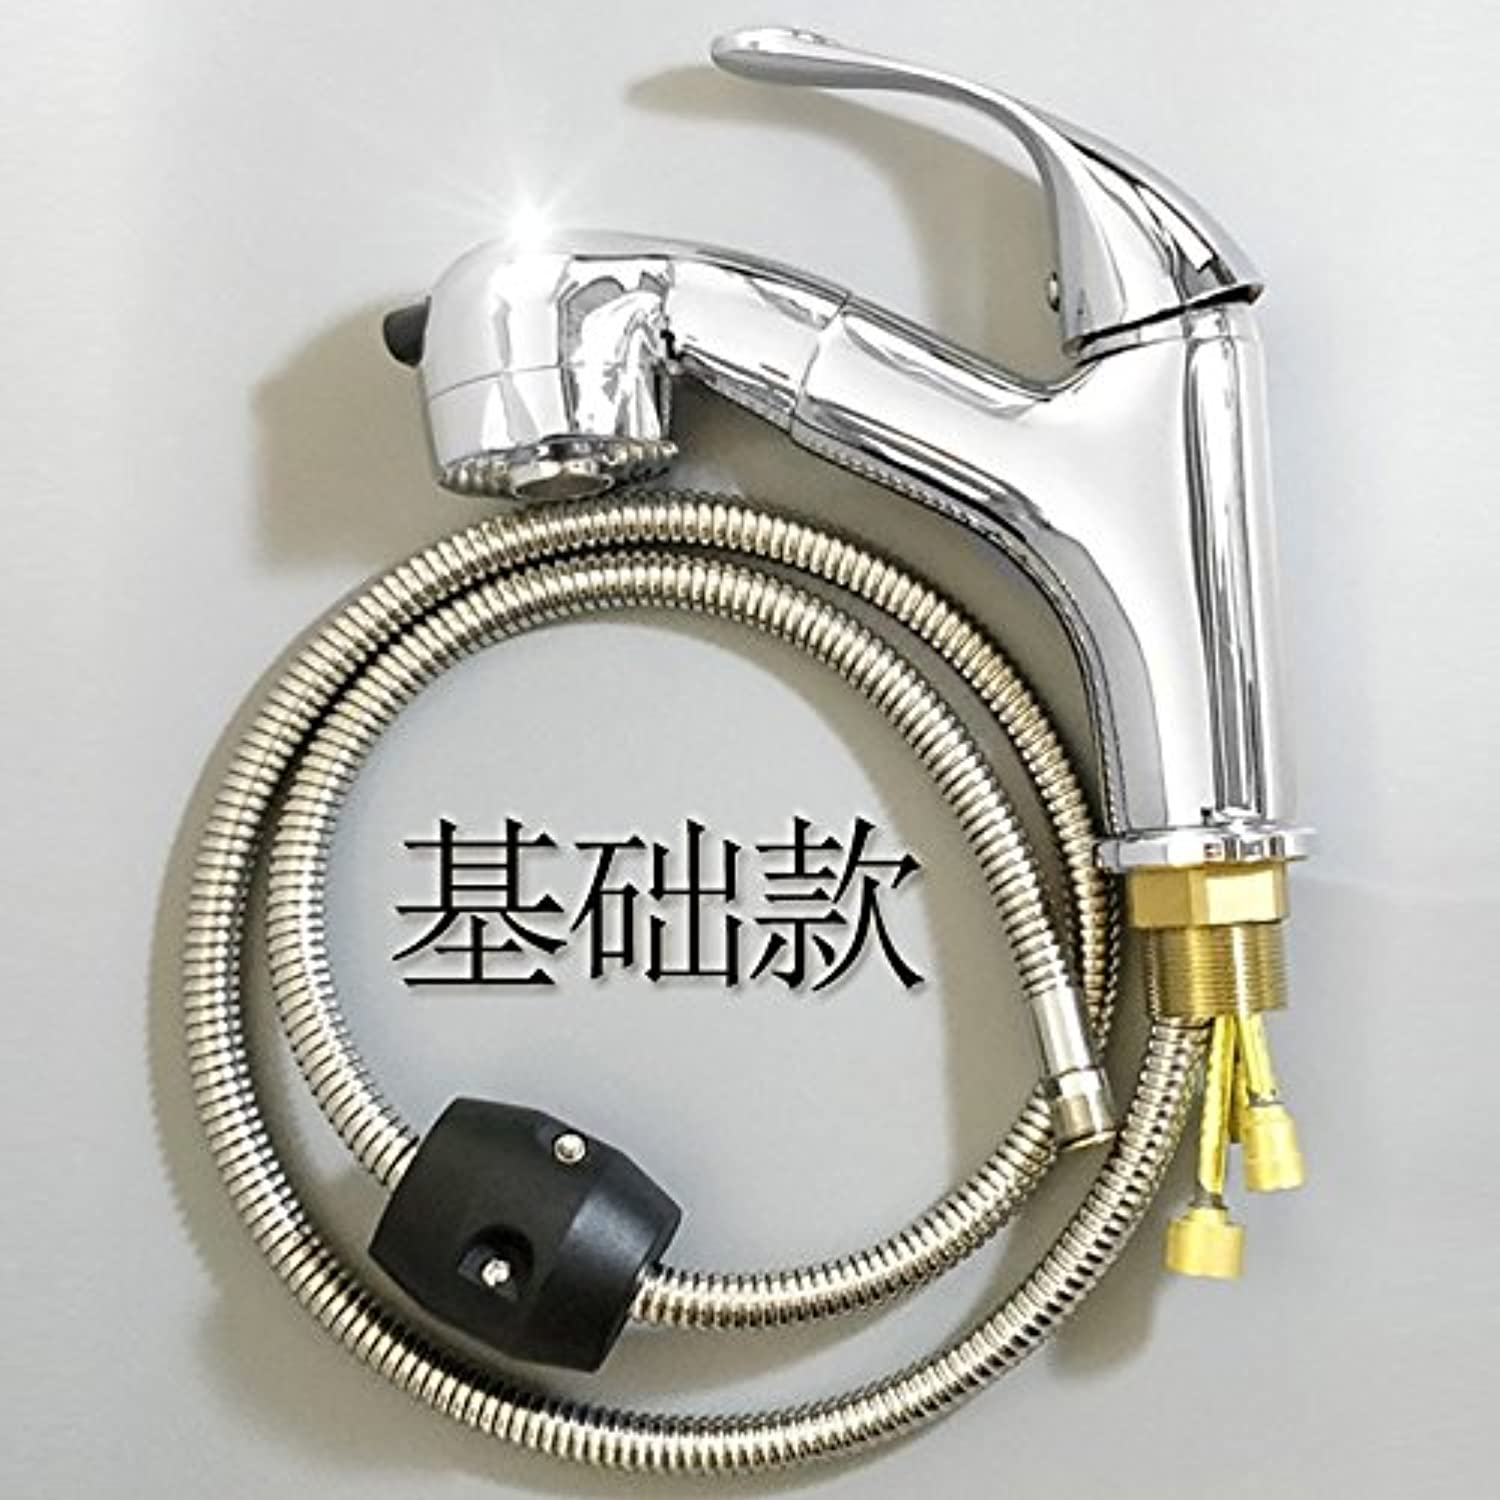 Bathroom Faucet Sink Taps Diy & Tools Taps Pulling Hot And Cold Water Faucet Shampoo Artifact Retractable Single Hole Hot And Cold Wash Basin Wash Basin Washshake With The Same Paragraph, Basic Models (Without Tube)